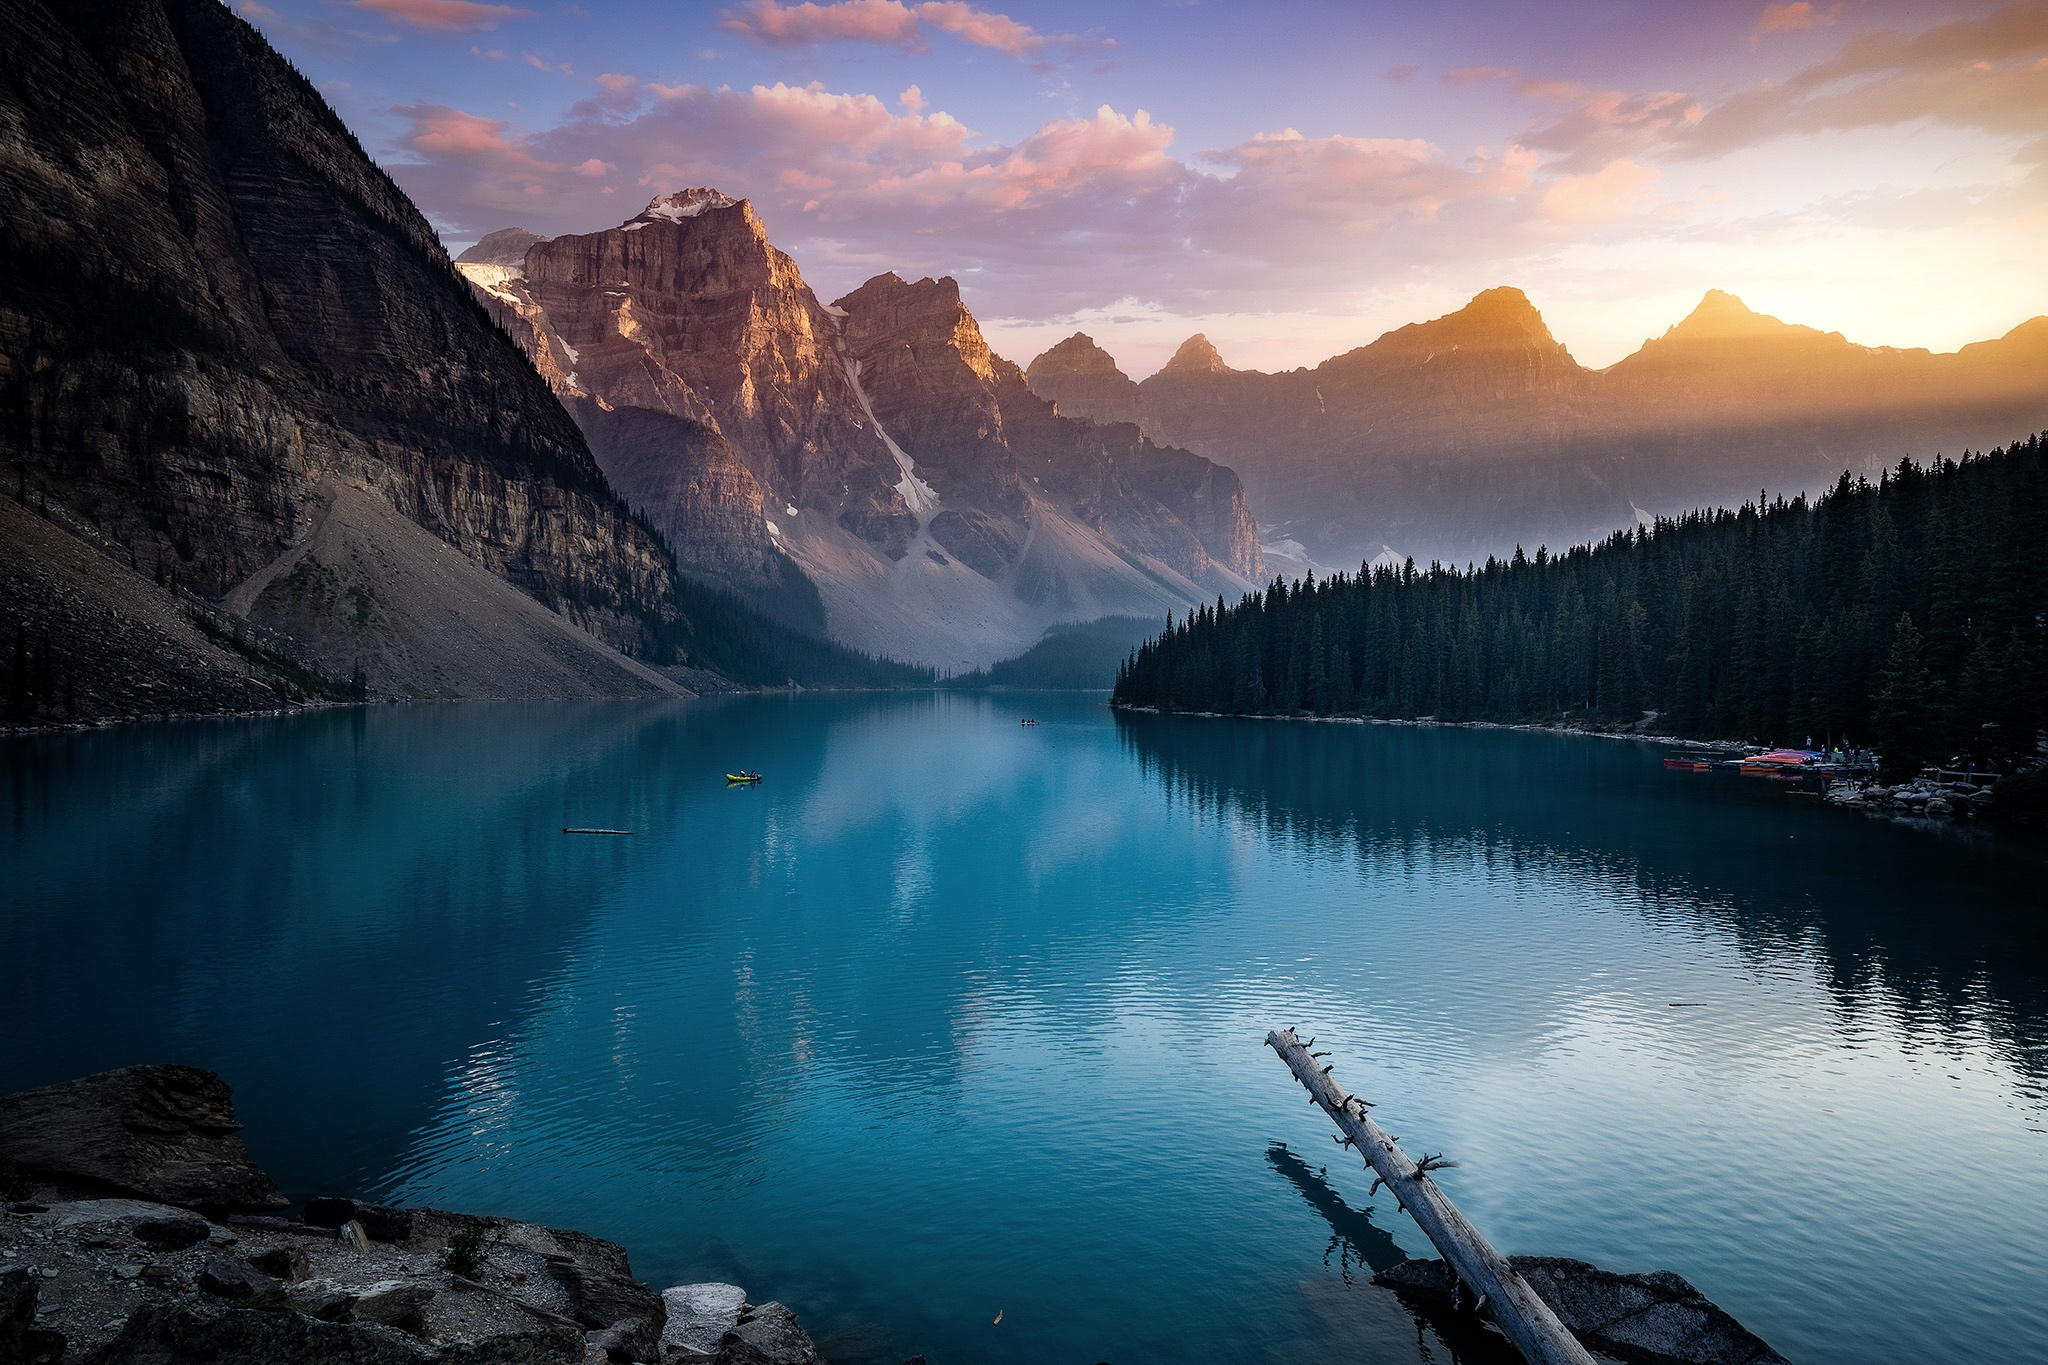 Sunset at Moraine Lake, Banff National Park.